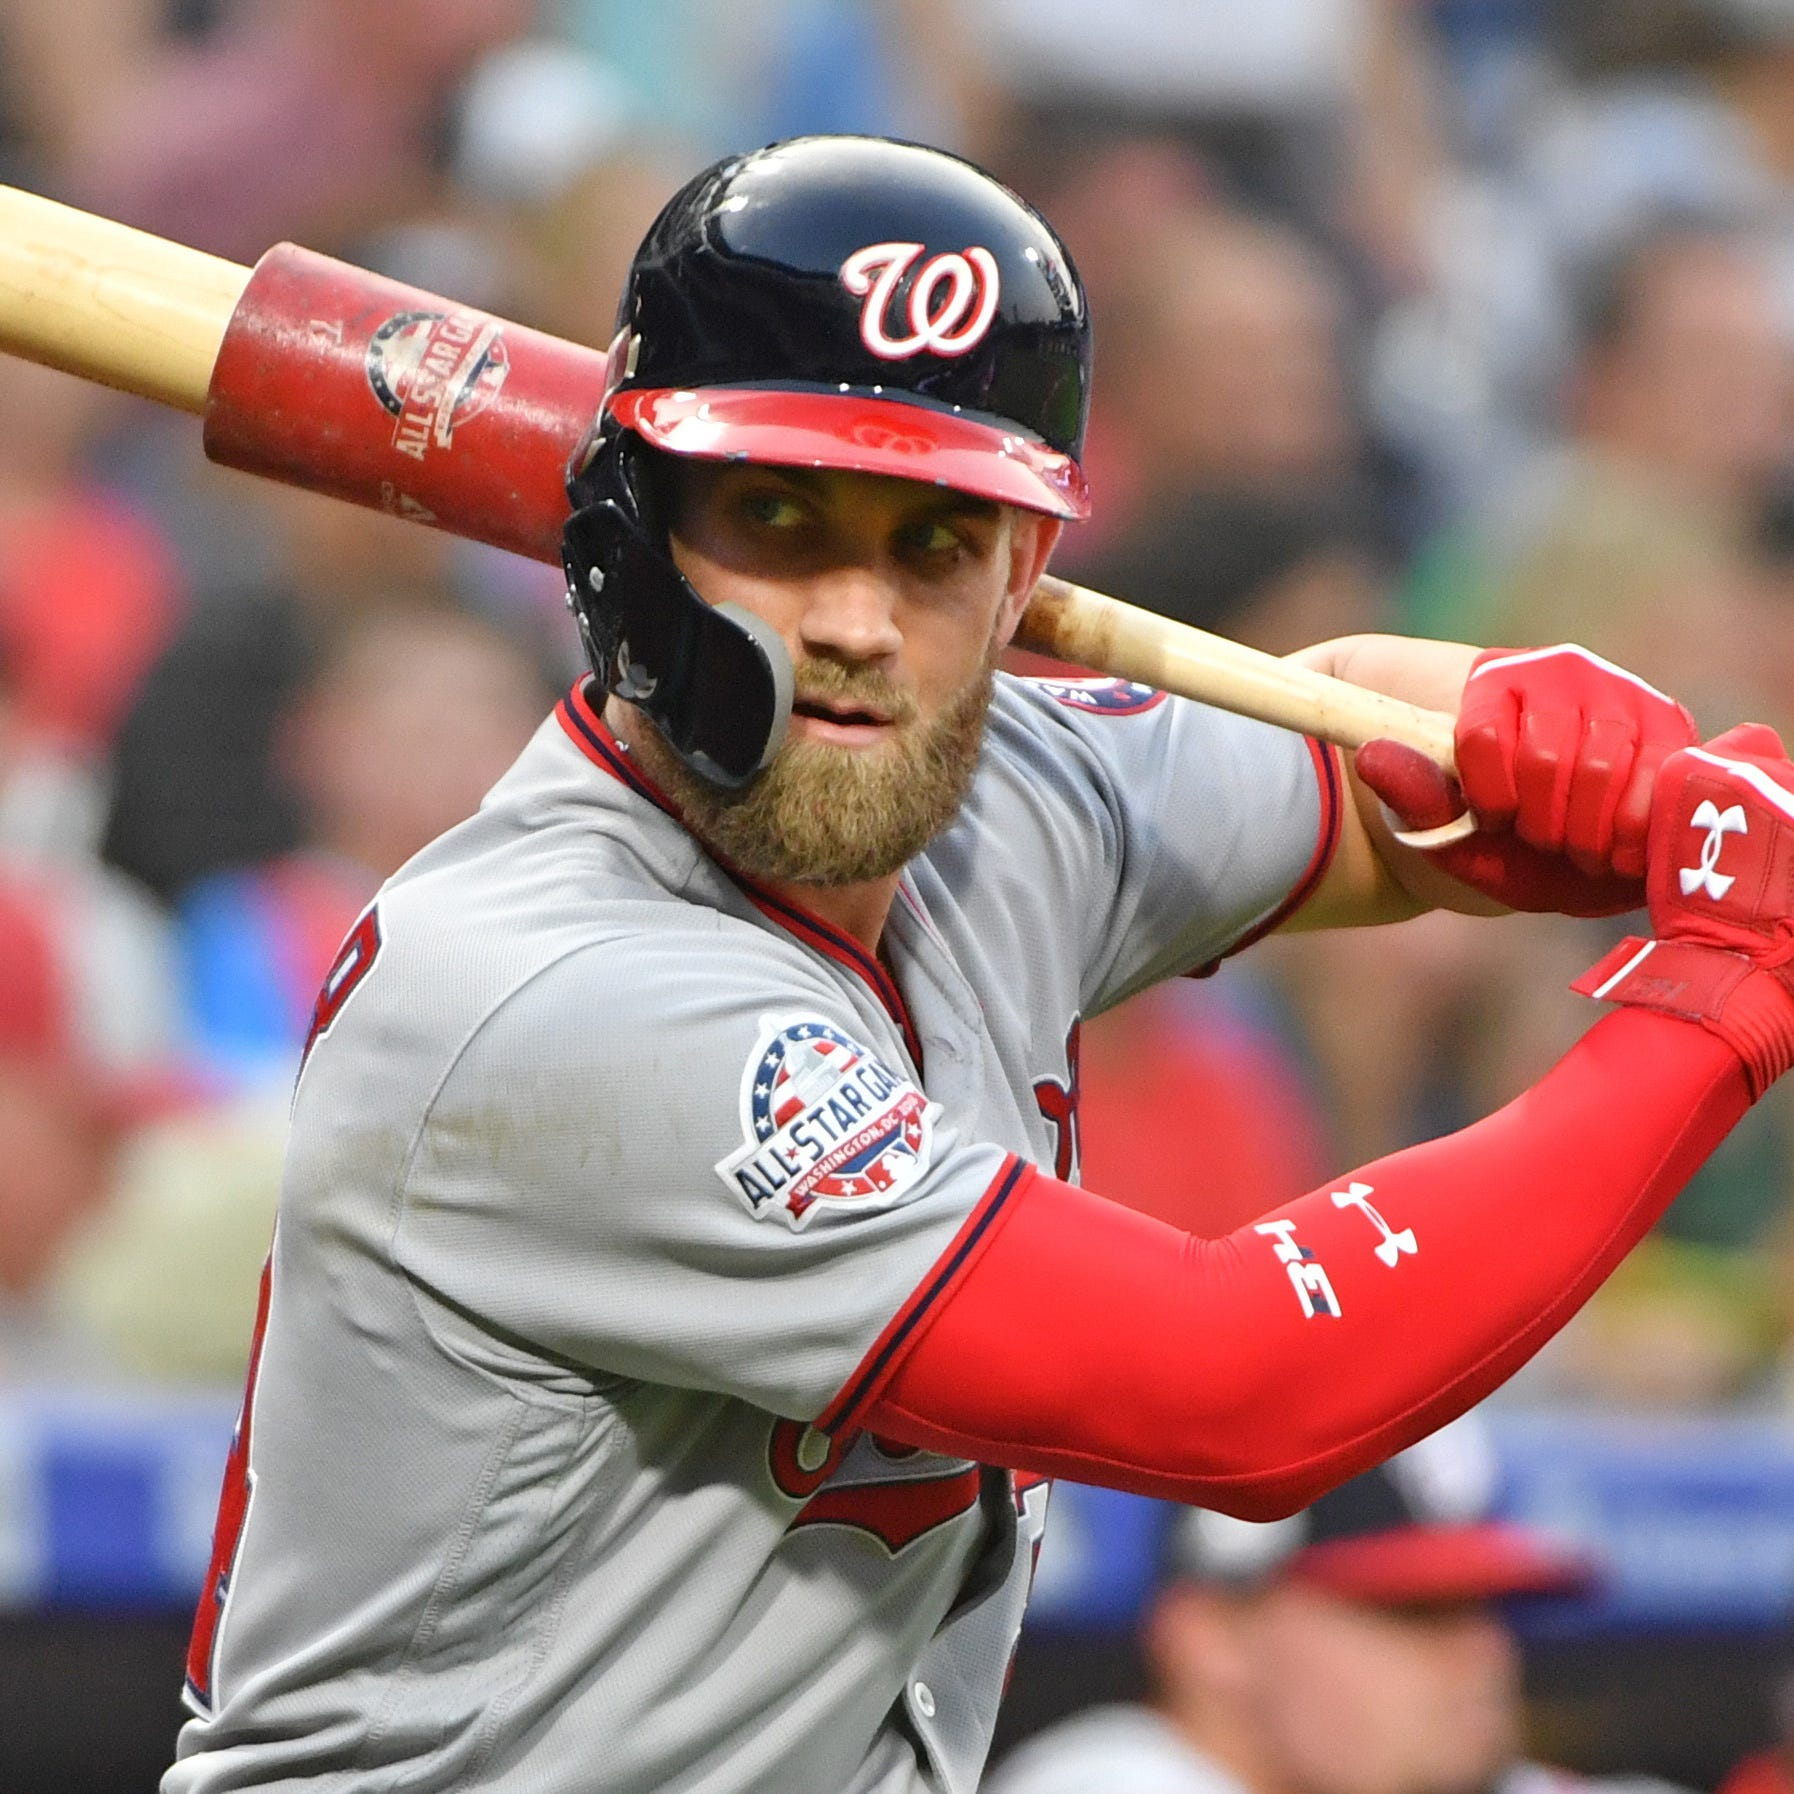 Free agent Bryce Harper set for meeting with Phillies